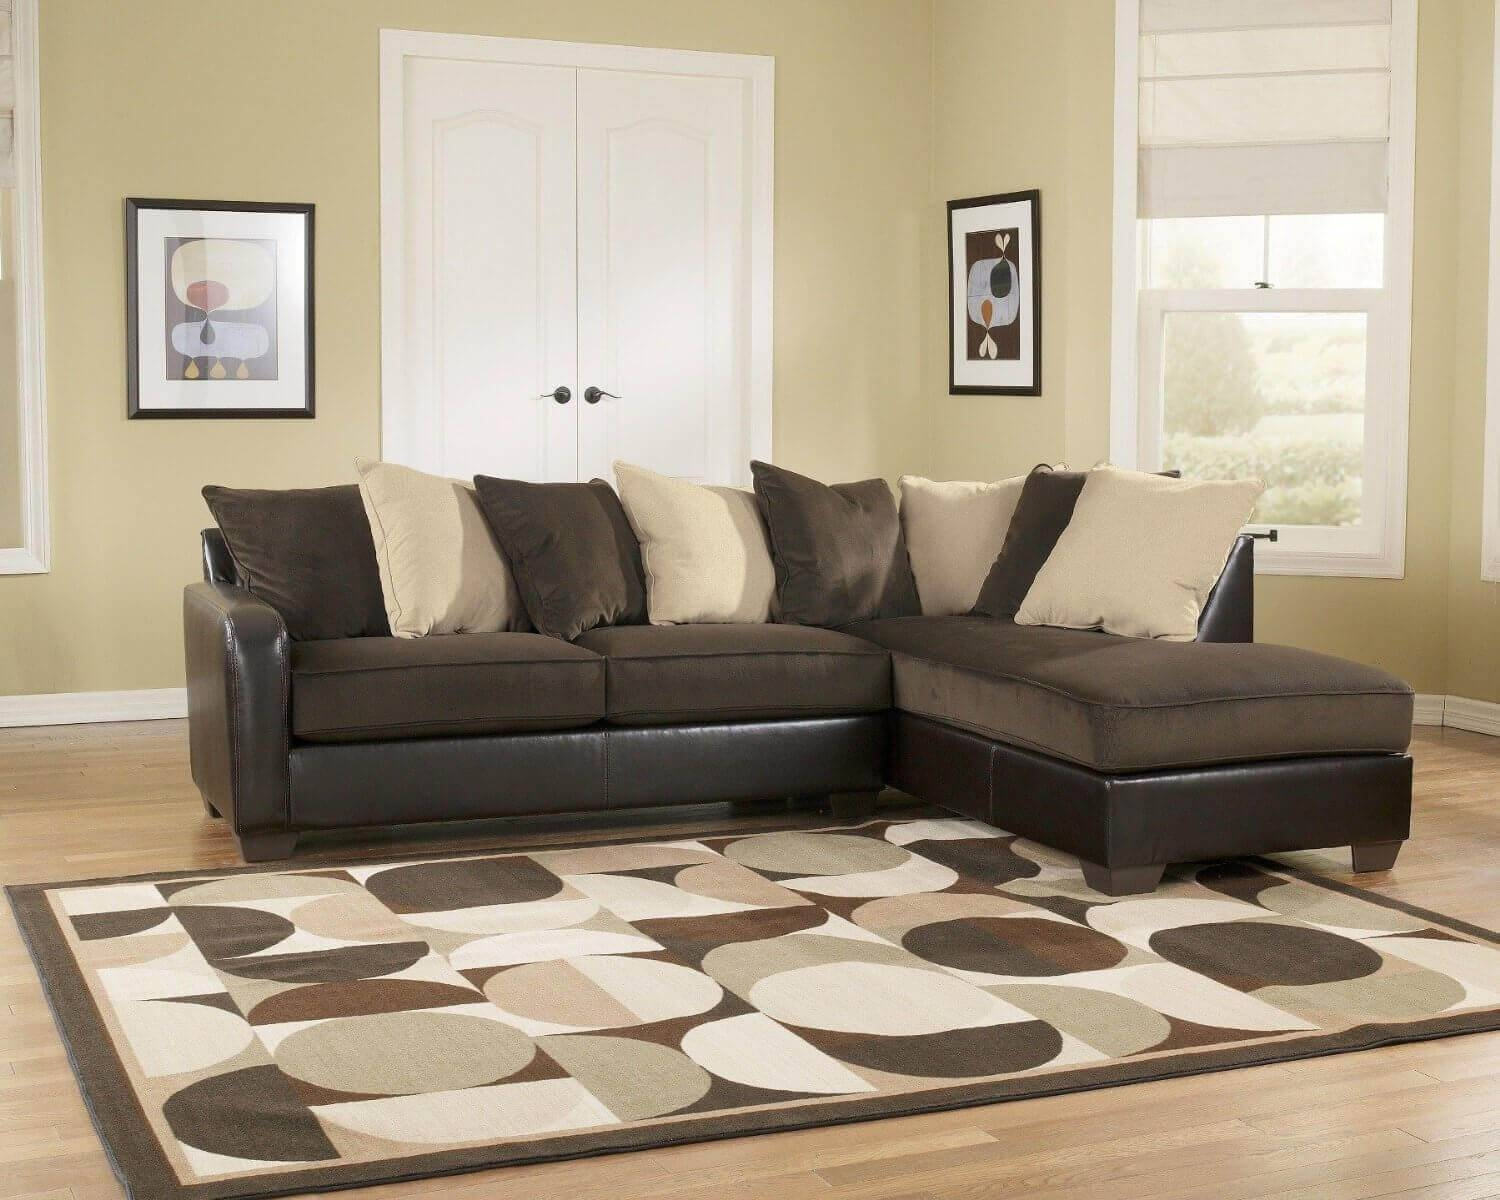 100 Beautiful Sectional Sofas Under $1,000 regarding 10 Piece Sectional Sofa (Image 4 of 30)